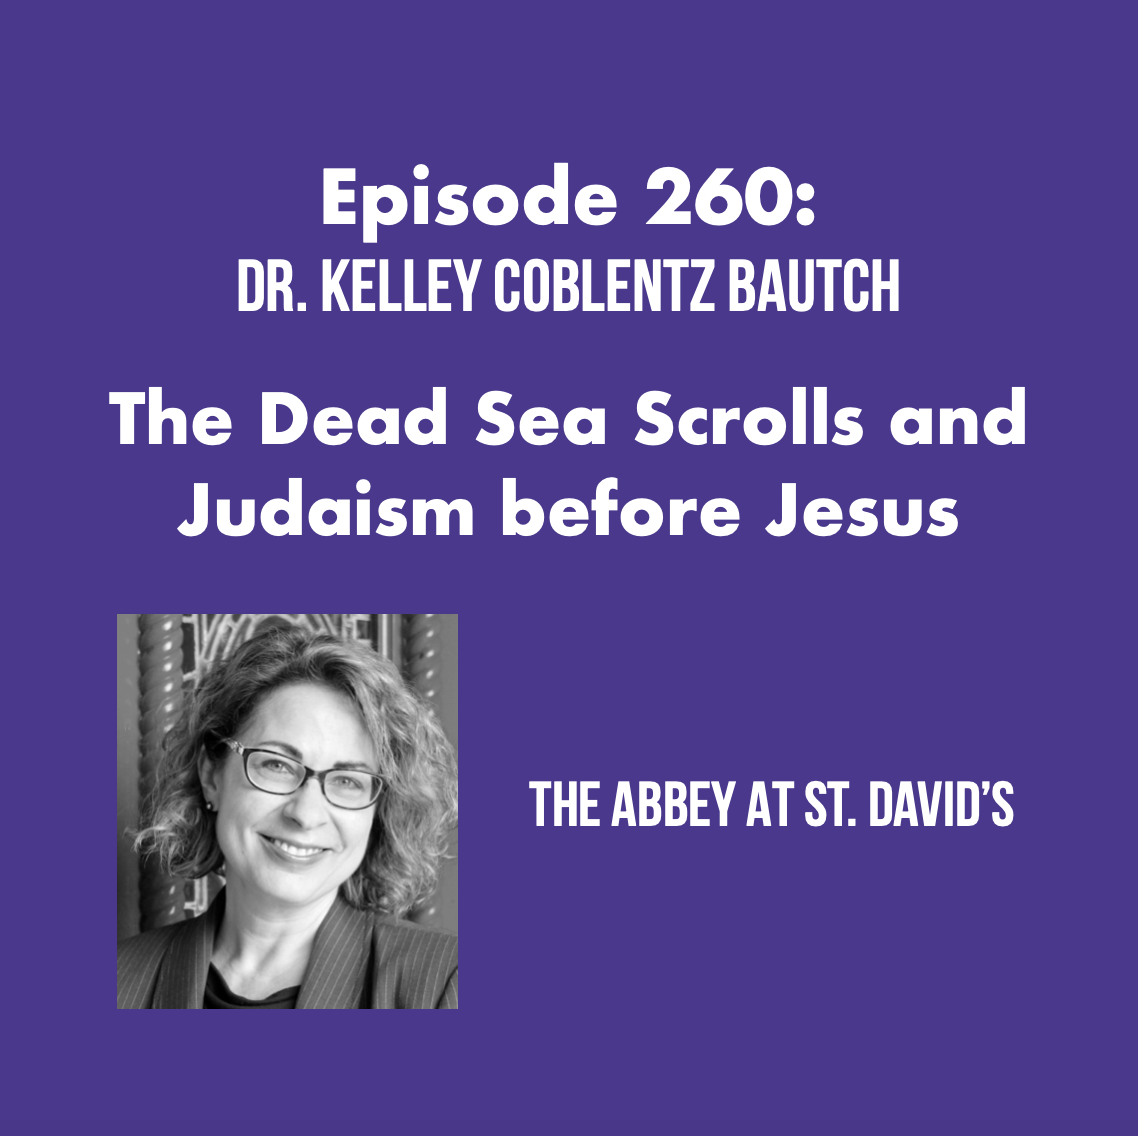 Episode 260: The Dead Sea Scrolls and Judaism before Jesus with Dr. Kelley Coblentz Bautch